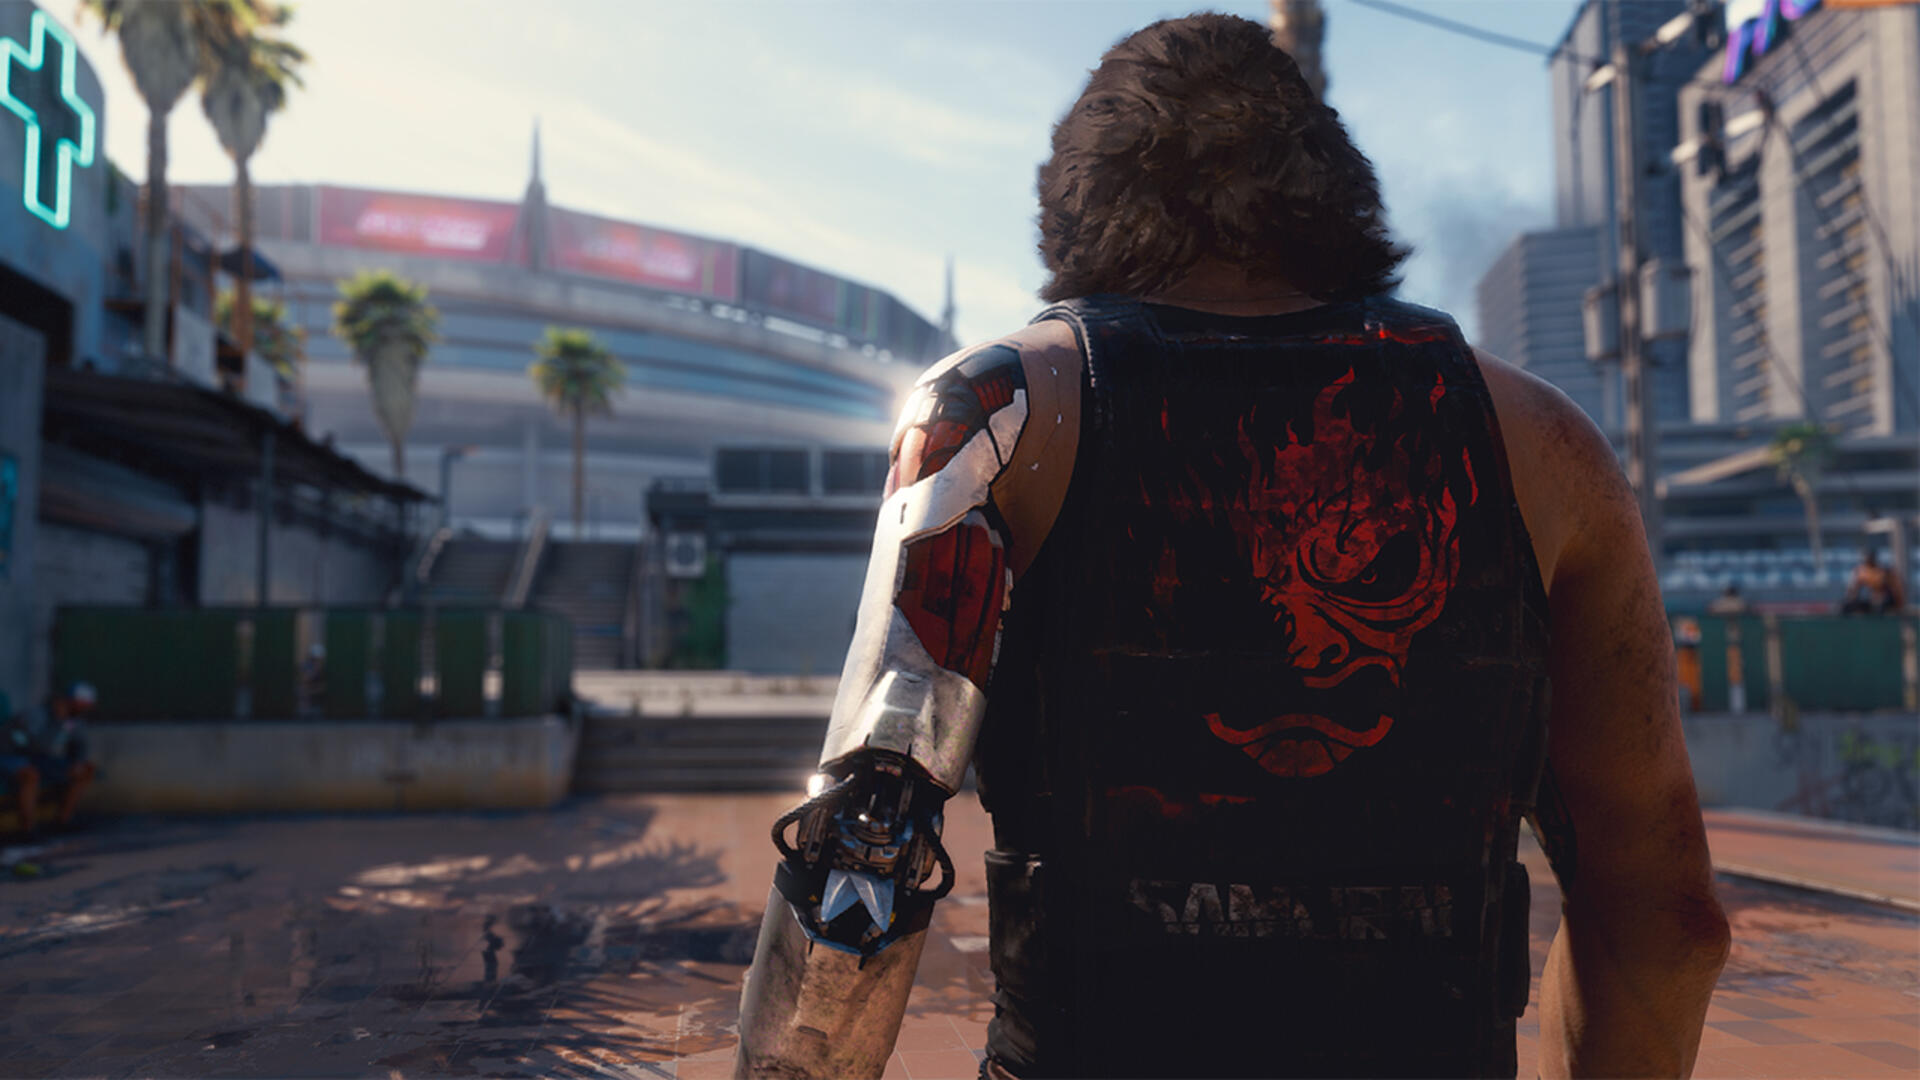 Keanu Reeves Has the Second Most Dialogue in Cyberpunk 2077